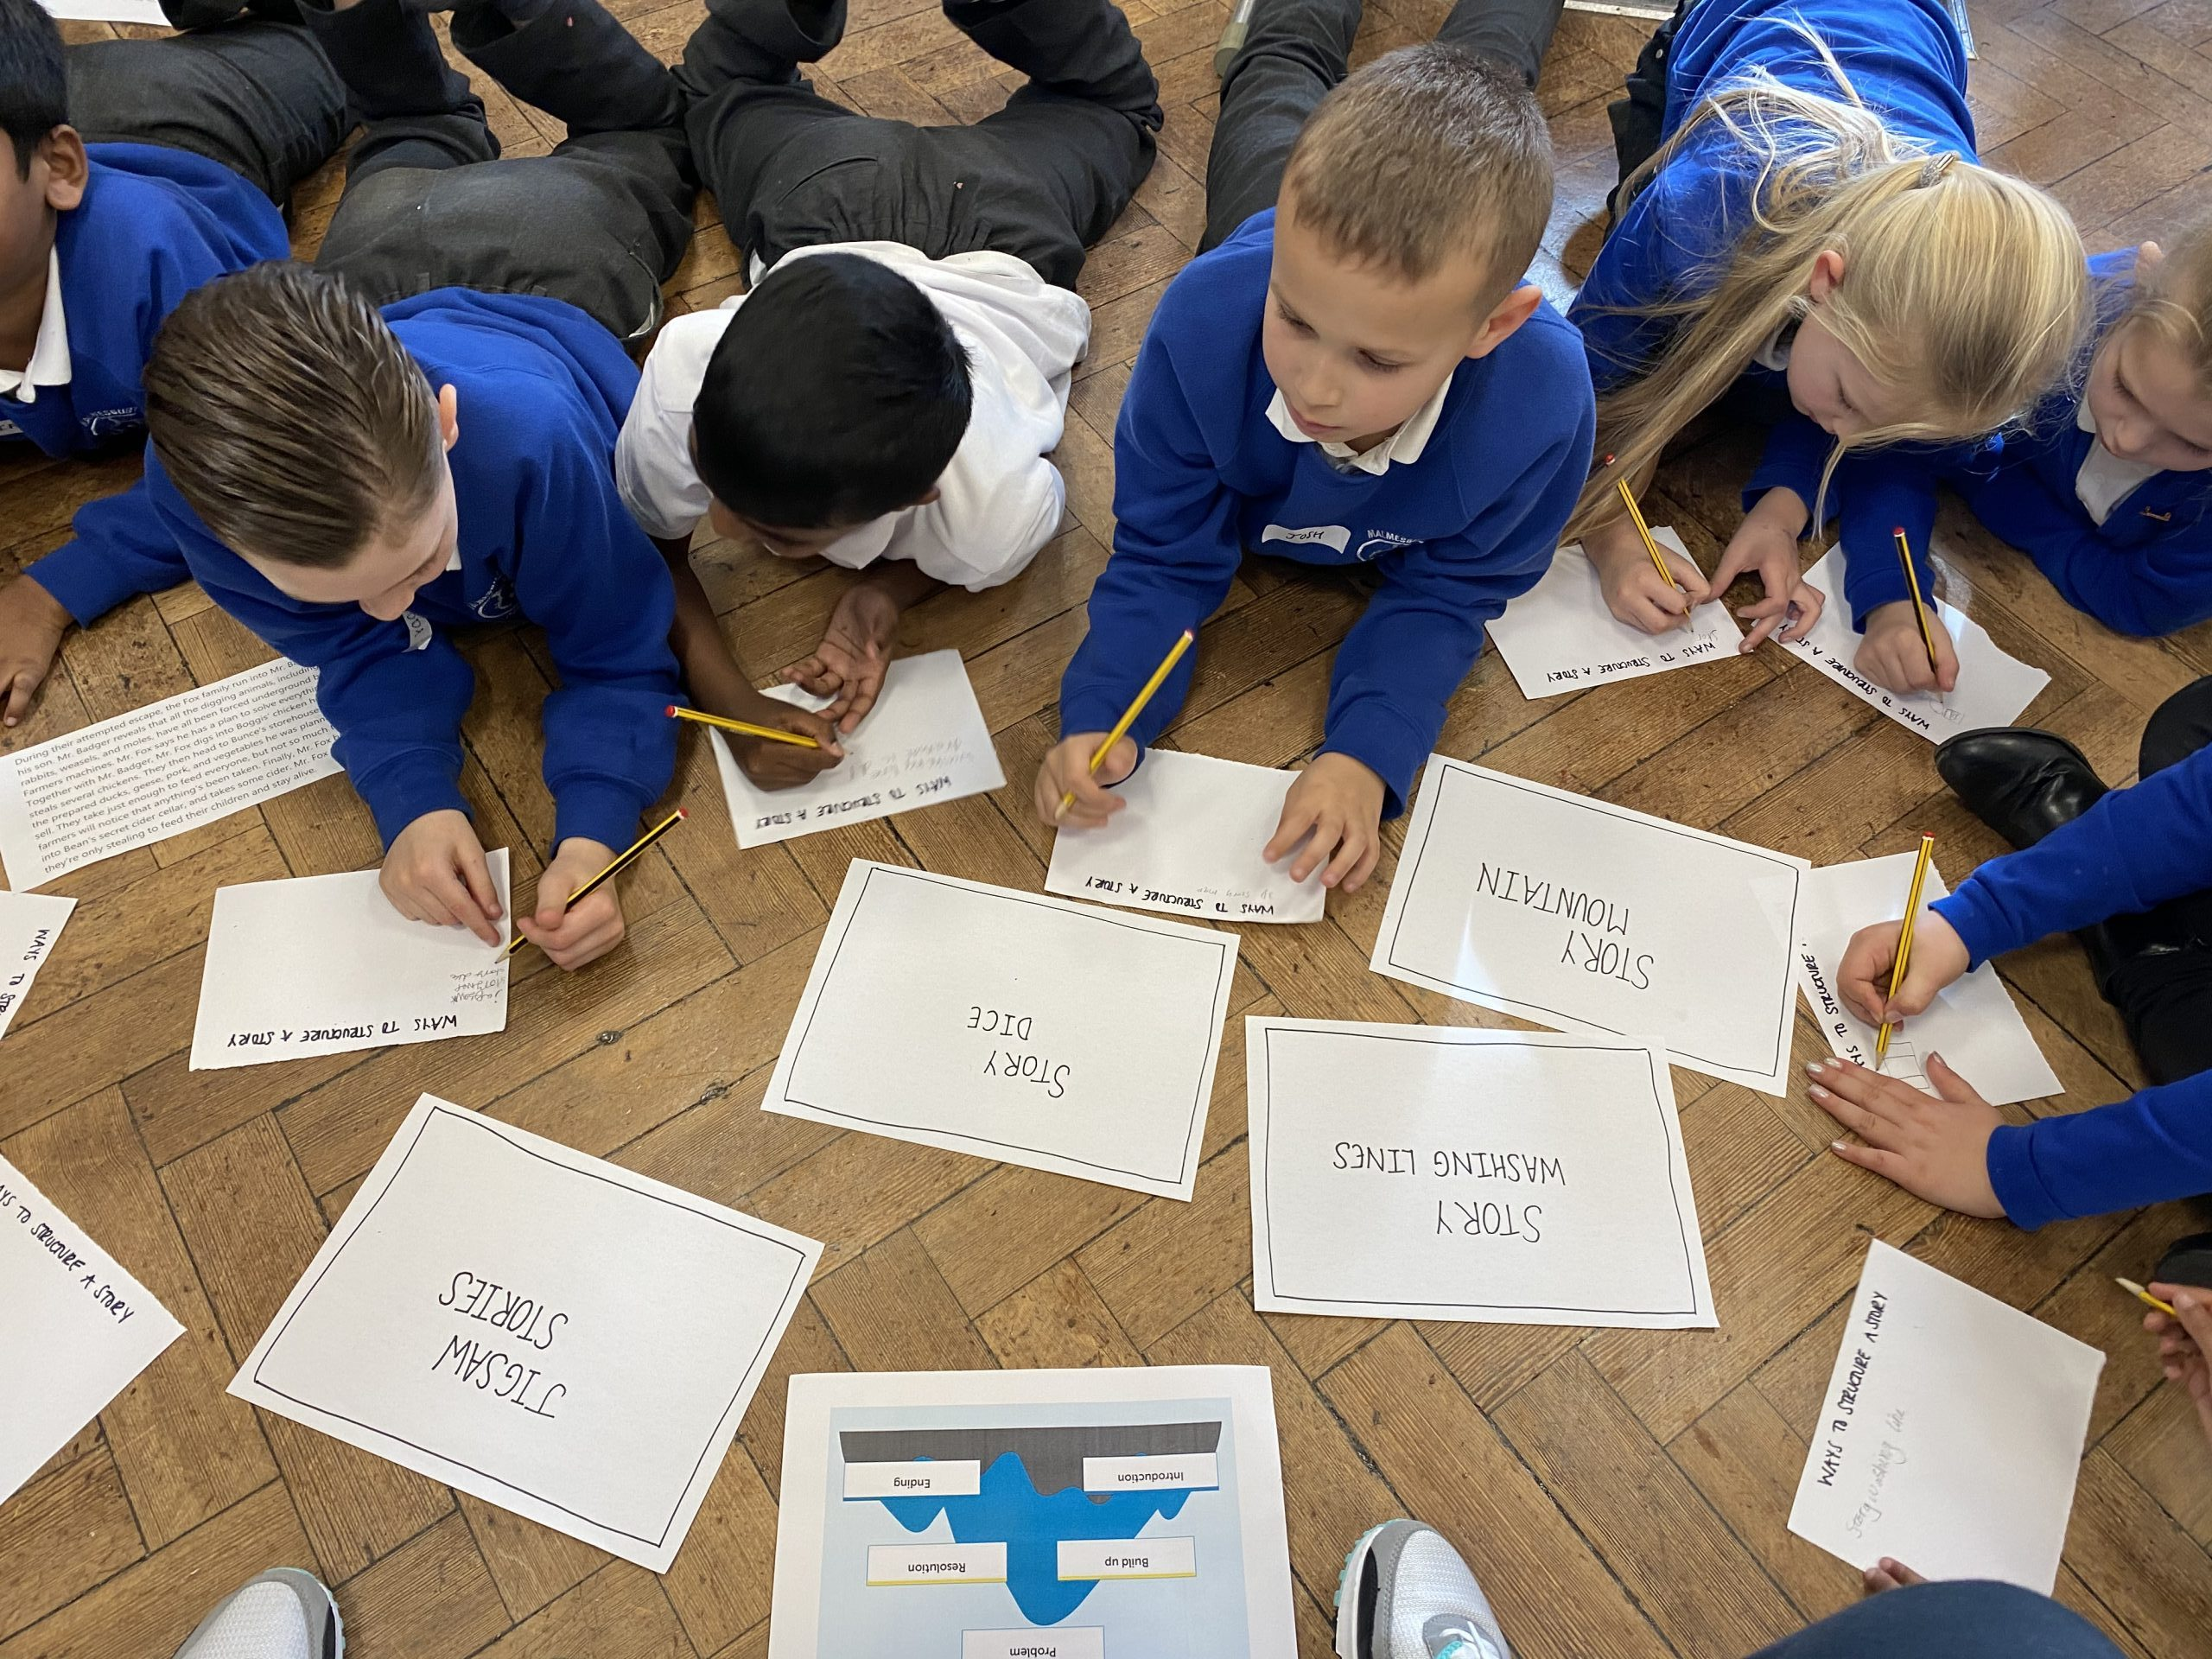 A group of children lying on their tummies writing out words